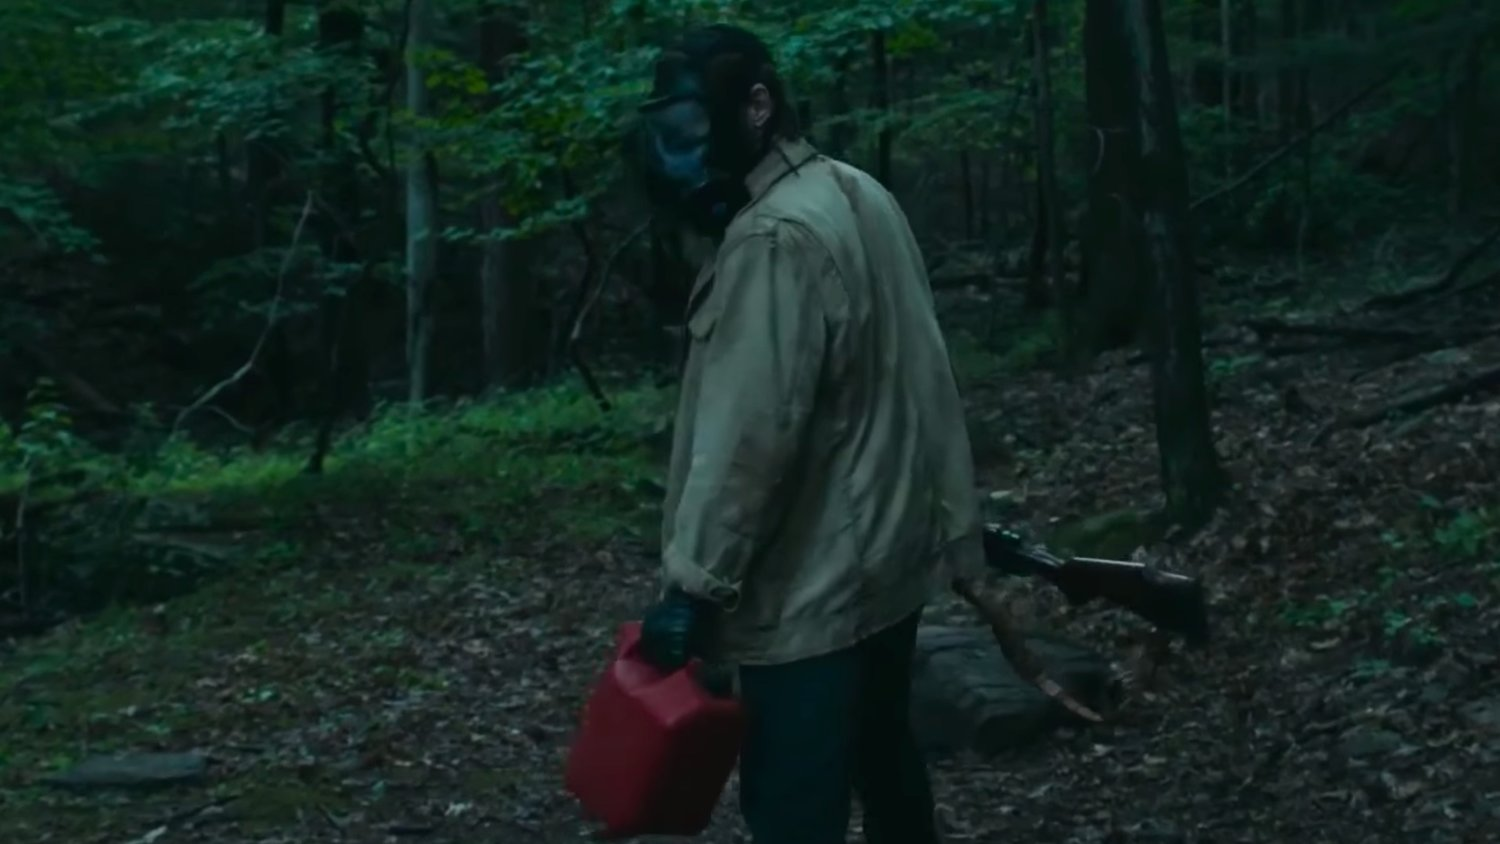 Fantastically Eerie Trailer for the Horror Film IT COMES AT NIGHT with Joel Edgerton